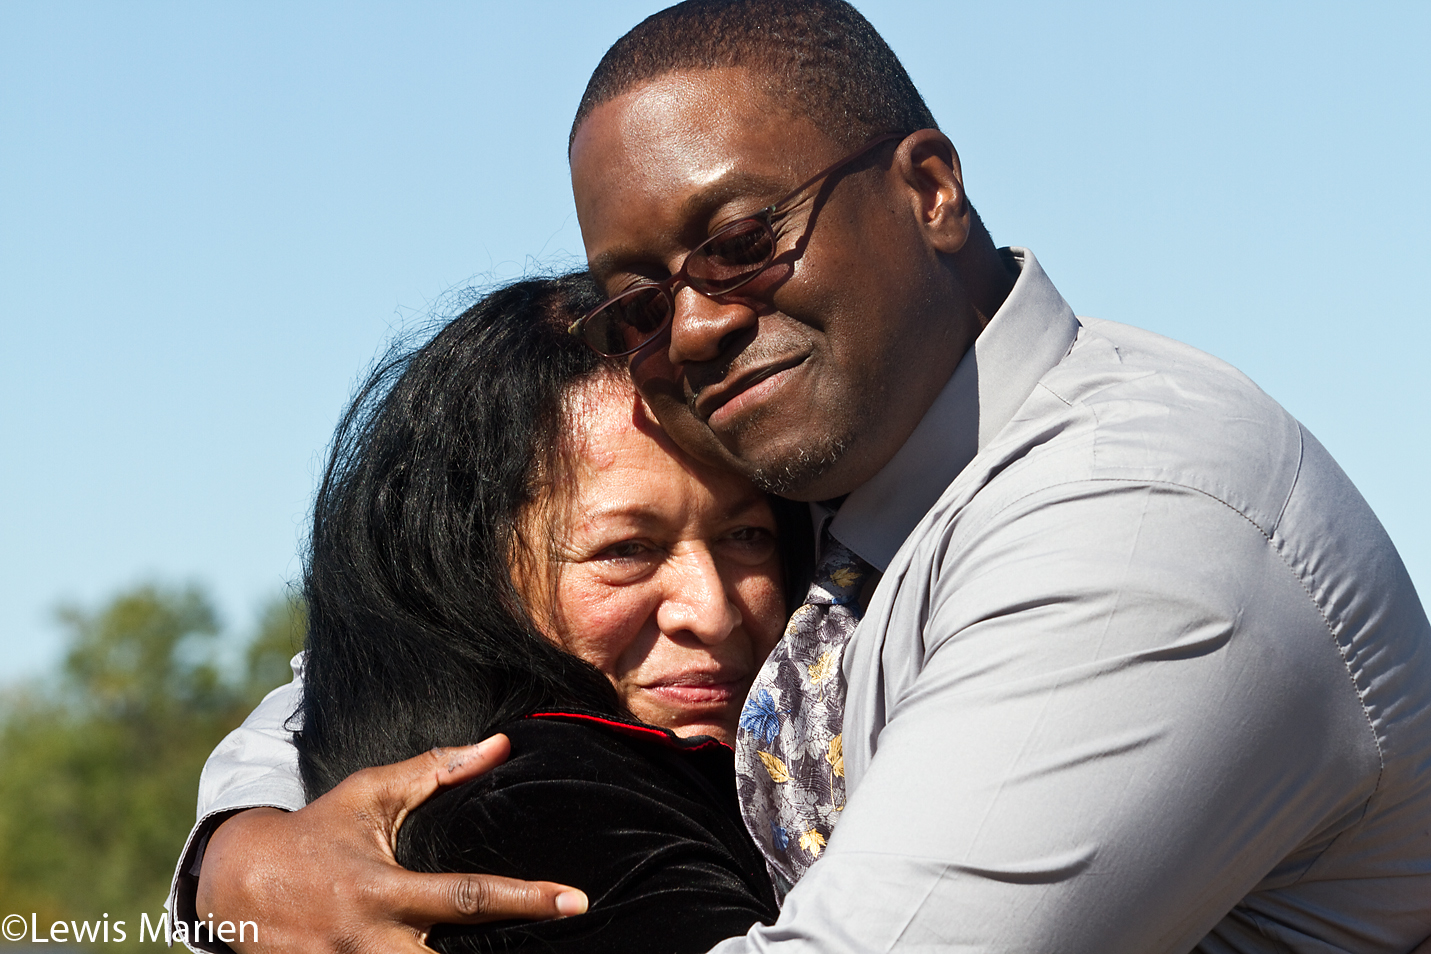 Shawn Whirl embraces his fiancée Gloria Castaneda after talking to the media following his release from the Henry C. Hill Correctional Center in Galesburg, Ill., on Wednesday, Oct. 14, 2015.